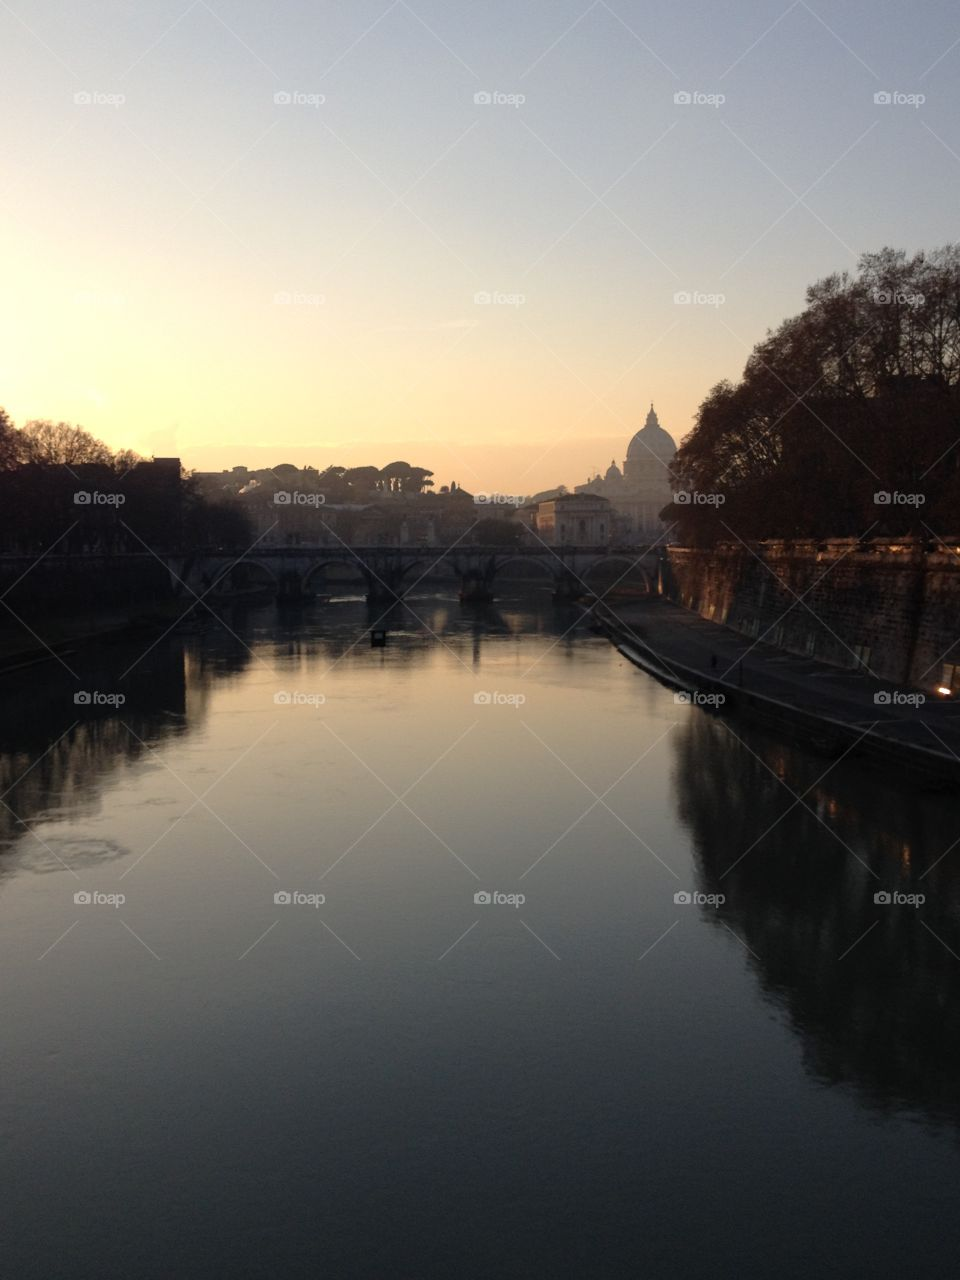 Tiber River in Rome overlooking the Vatican